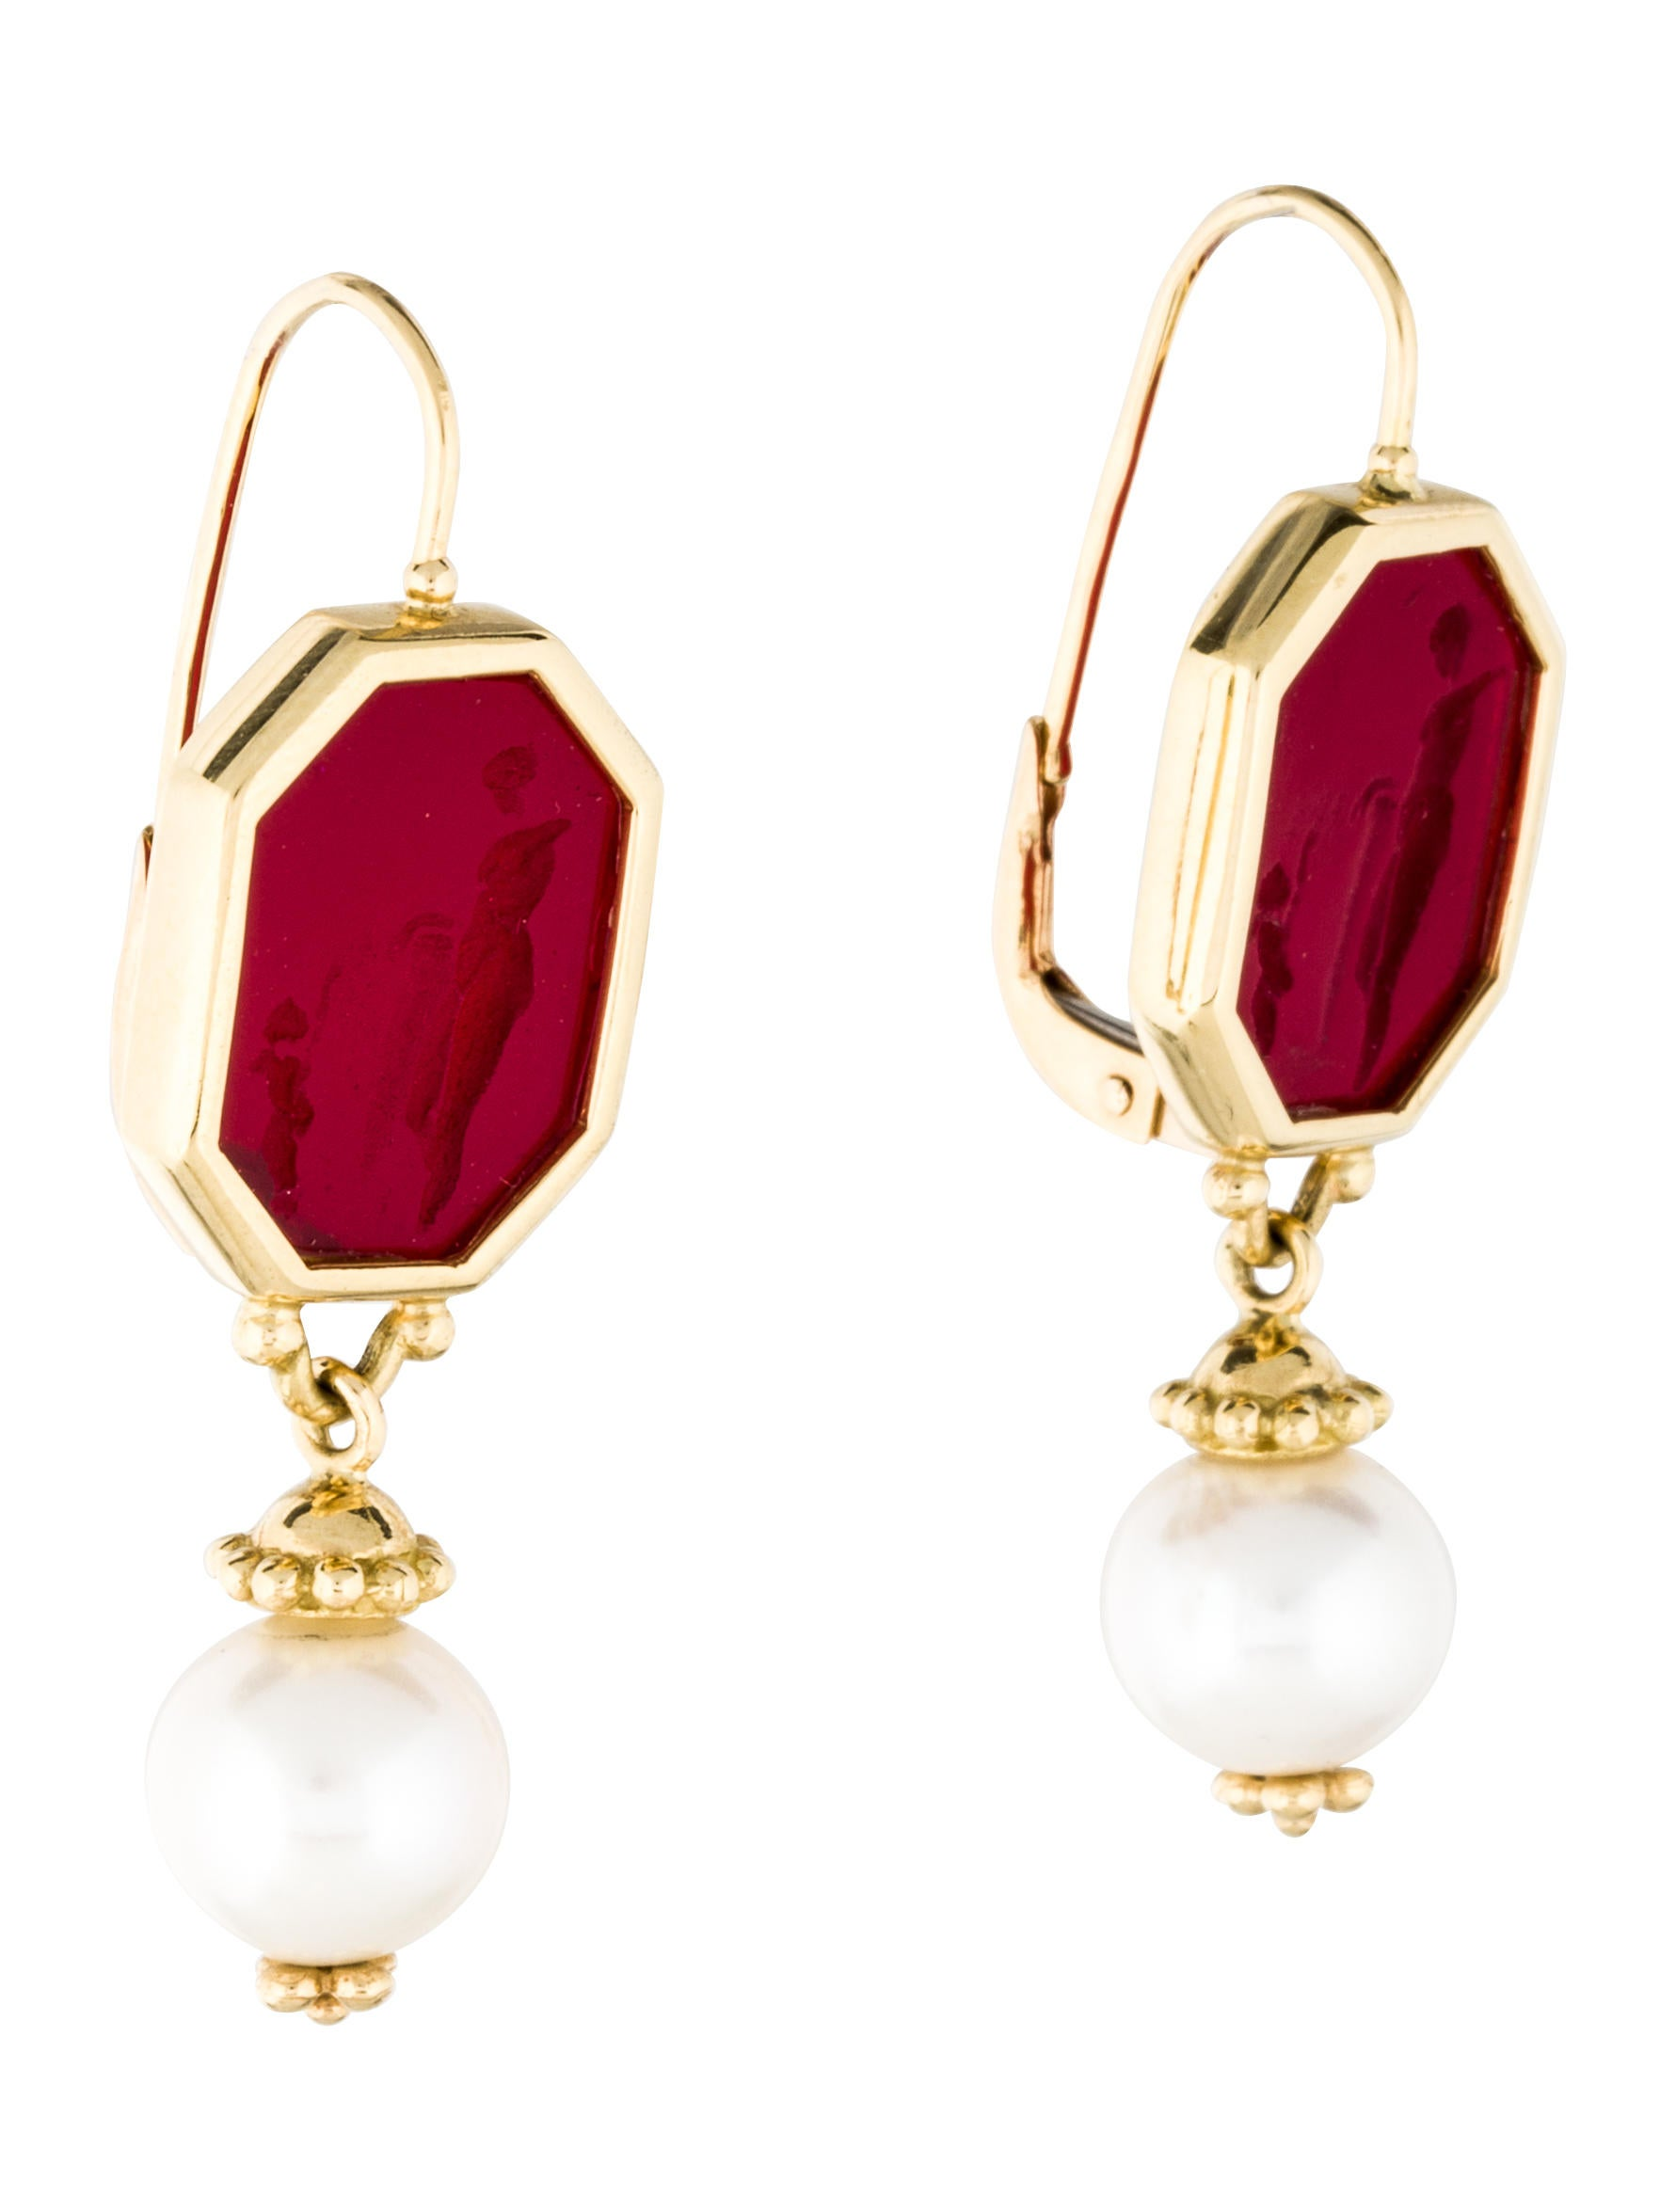 Tagliamonte Intaglio Pearl Drop Earrings Earrings